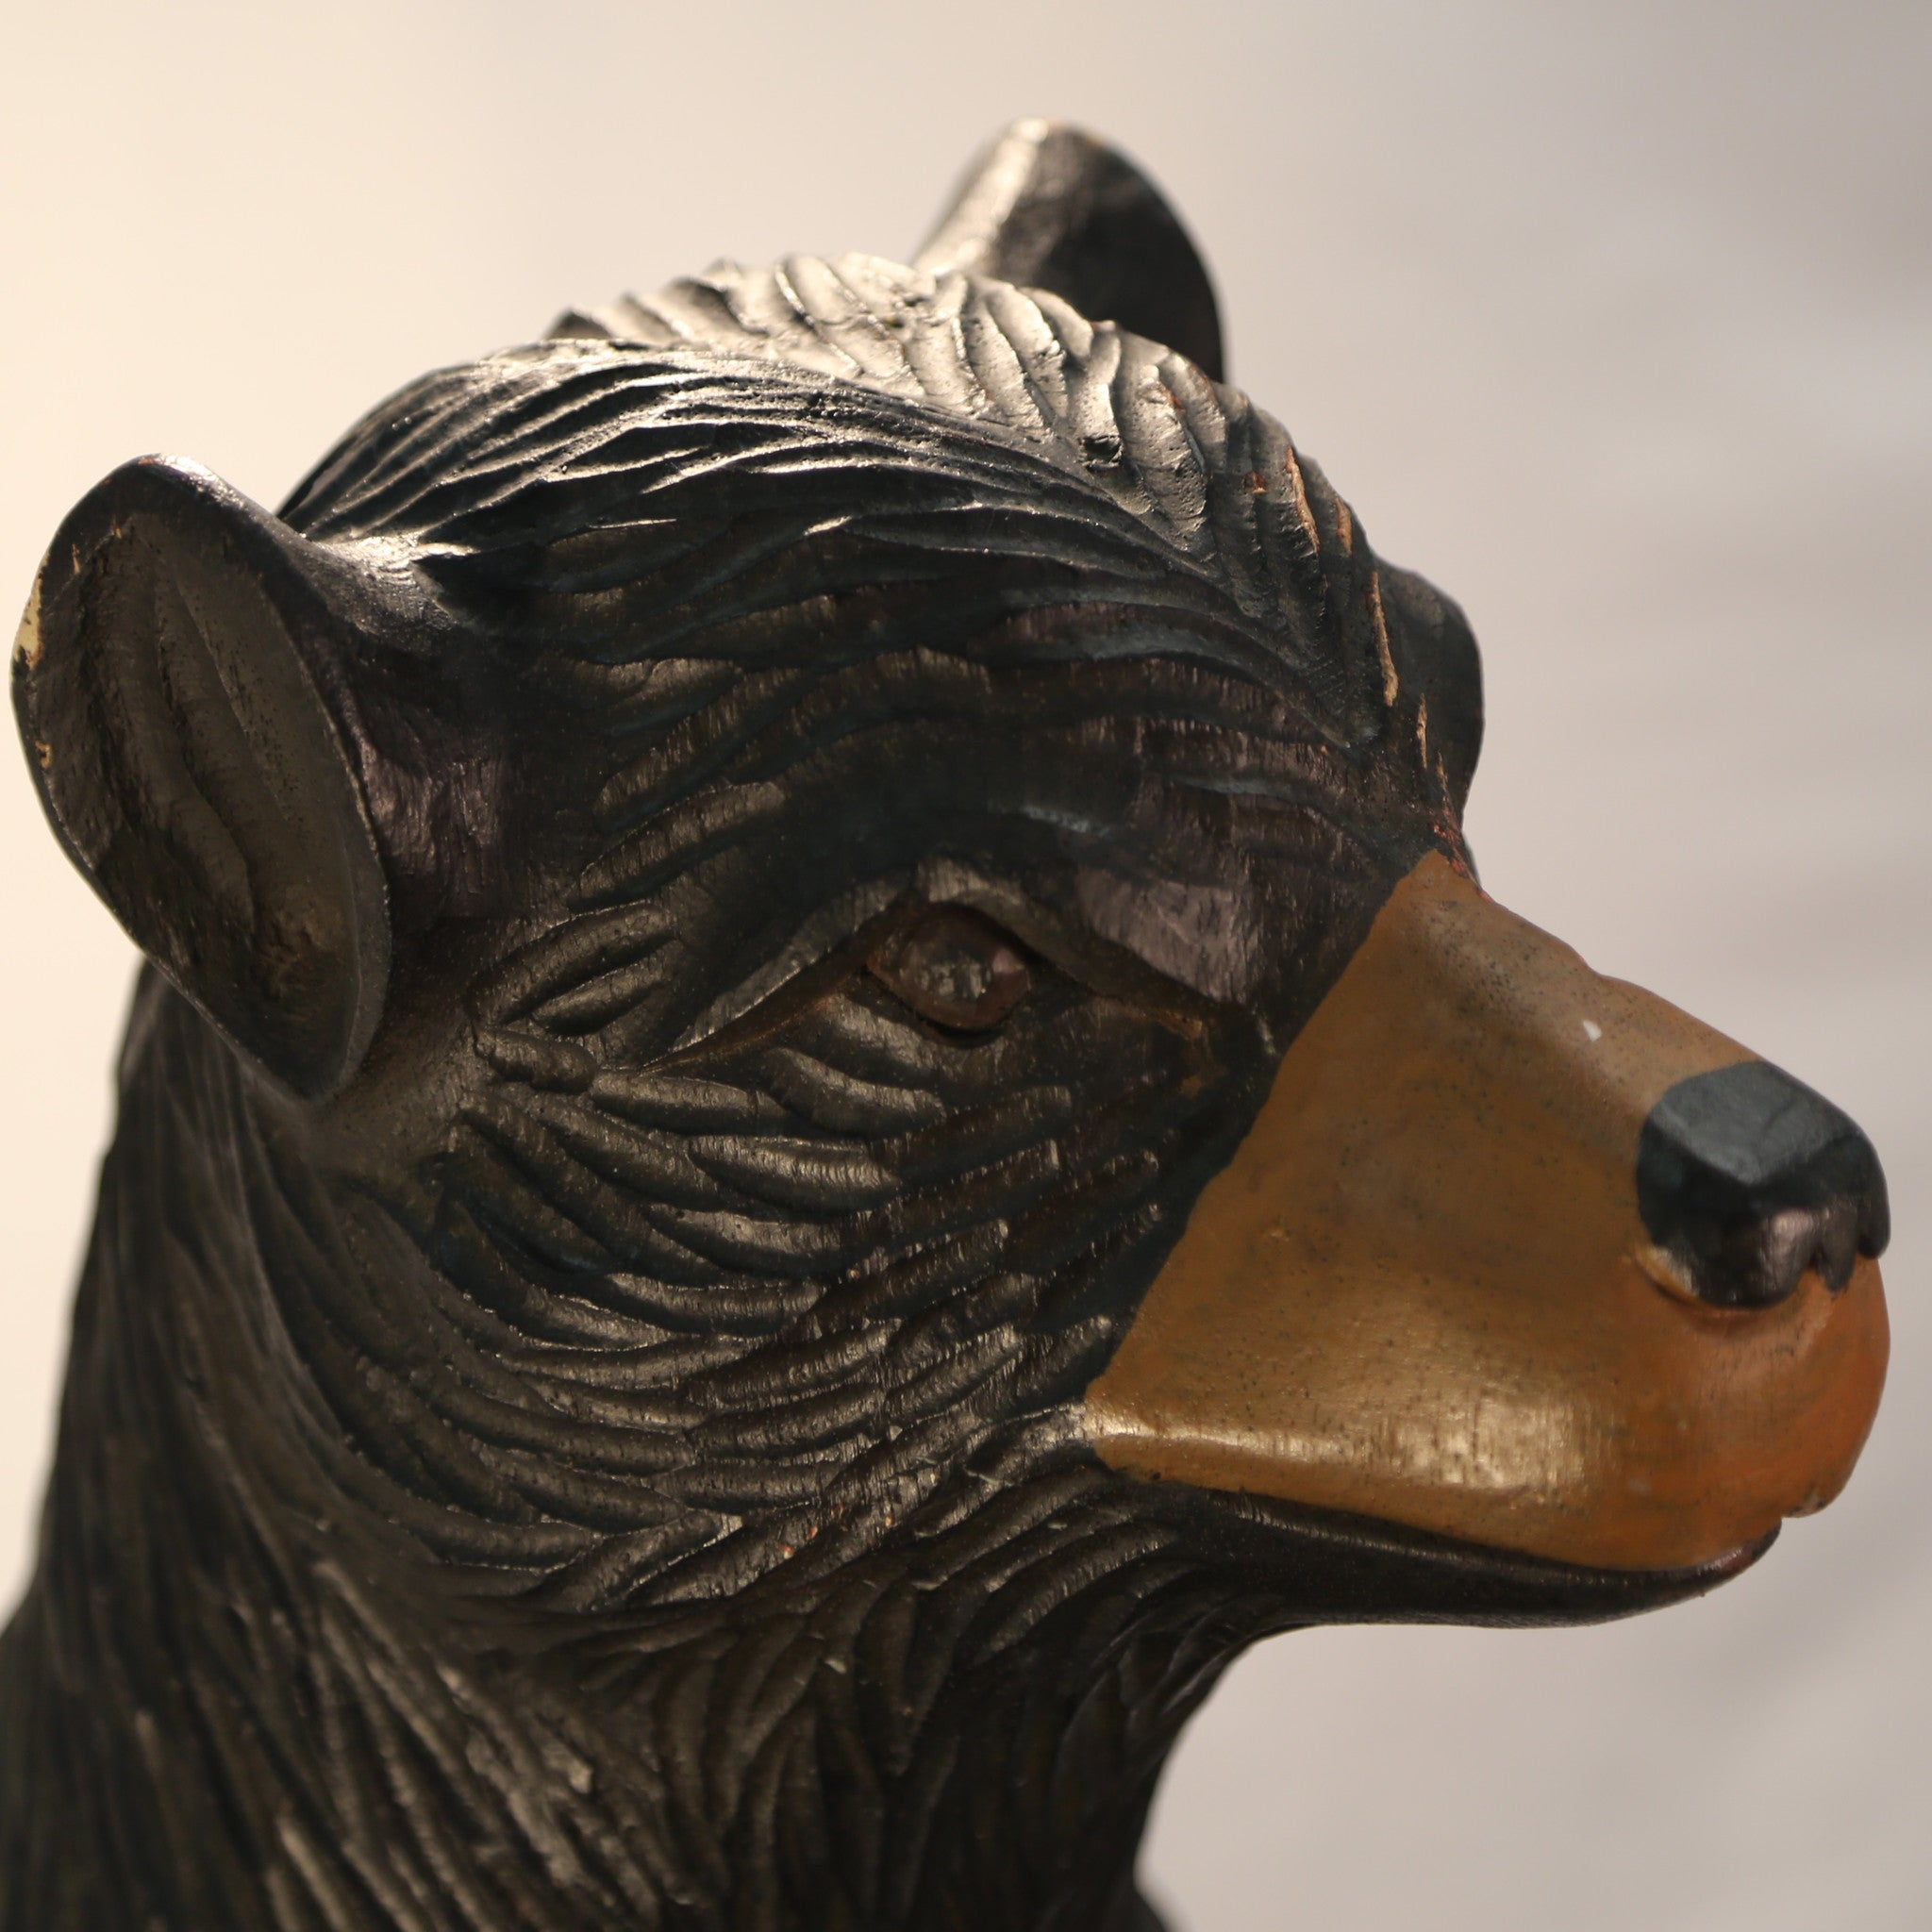 Big Black Bear carving